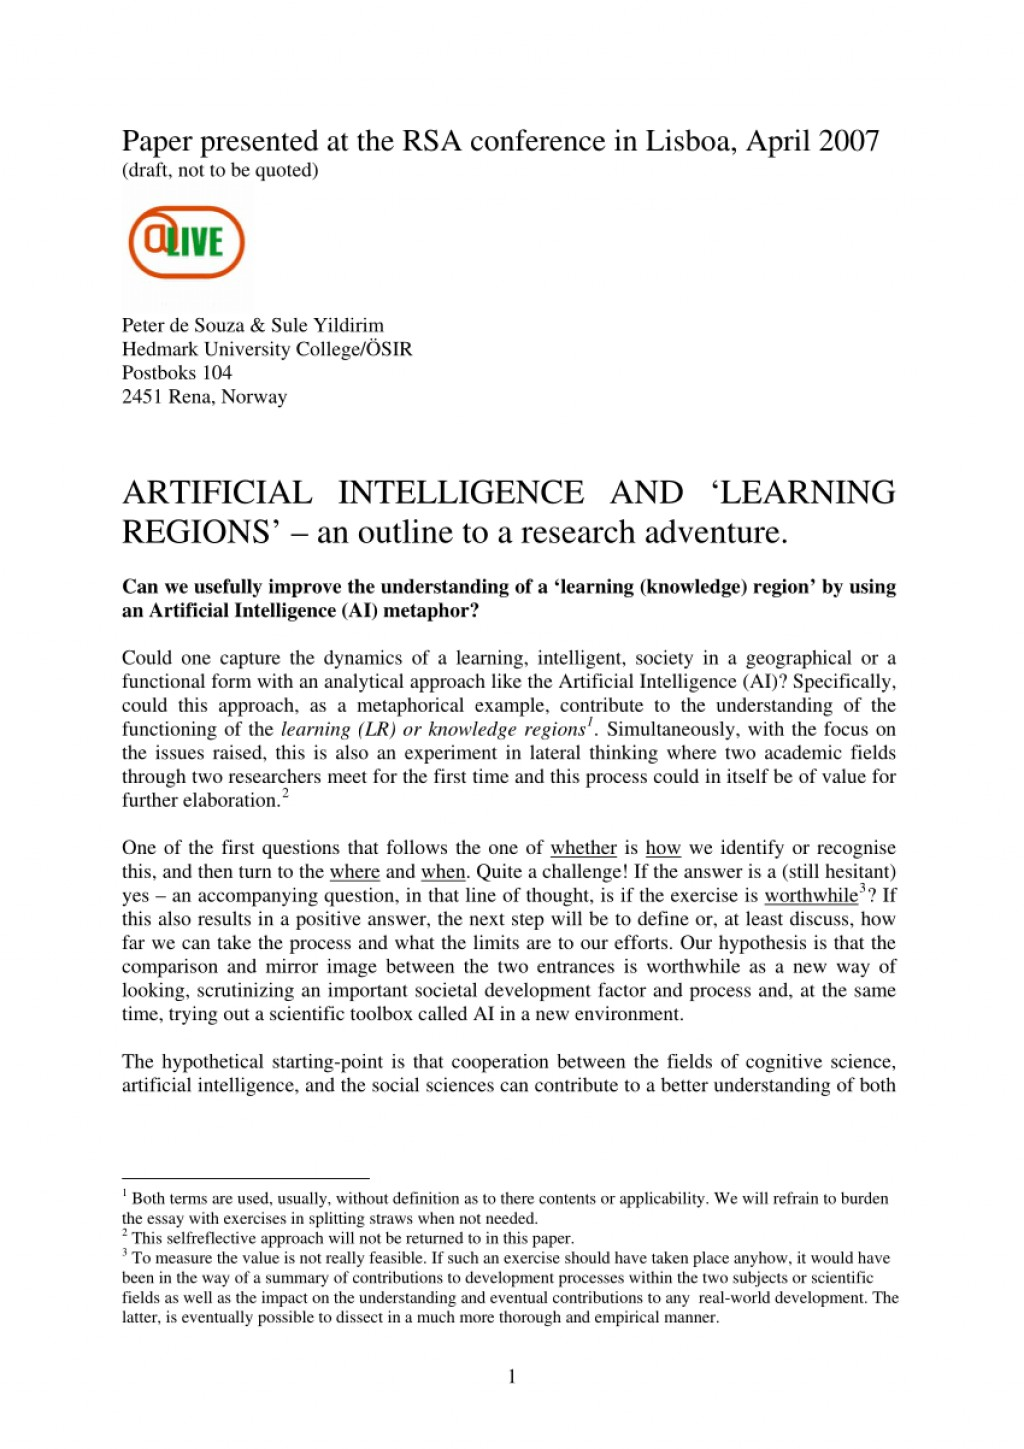 002 Largepreview Research Paper Artificial Intelligence Rare Outline Large